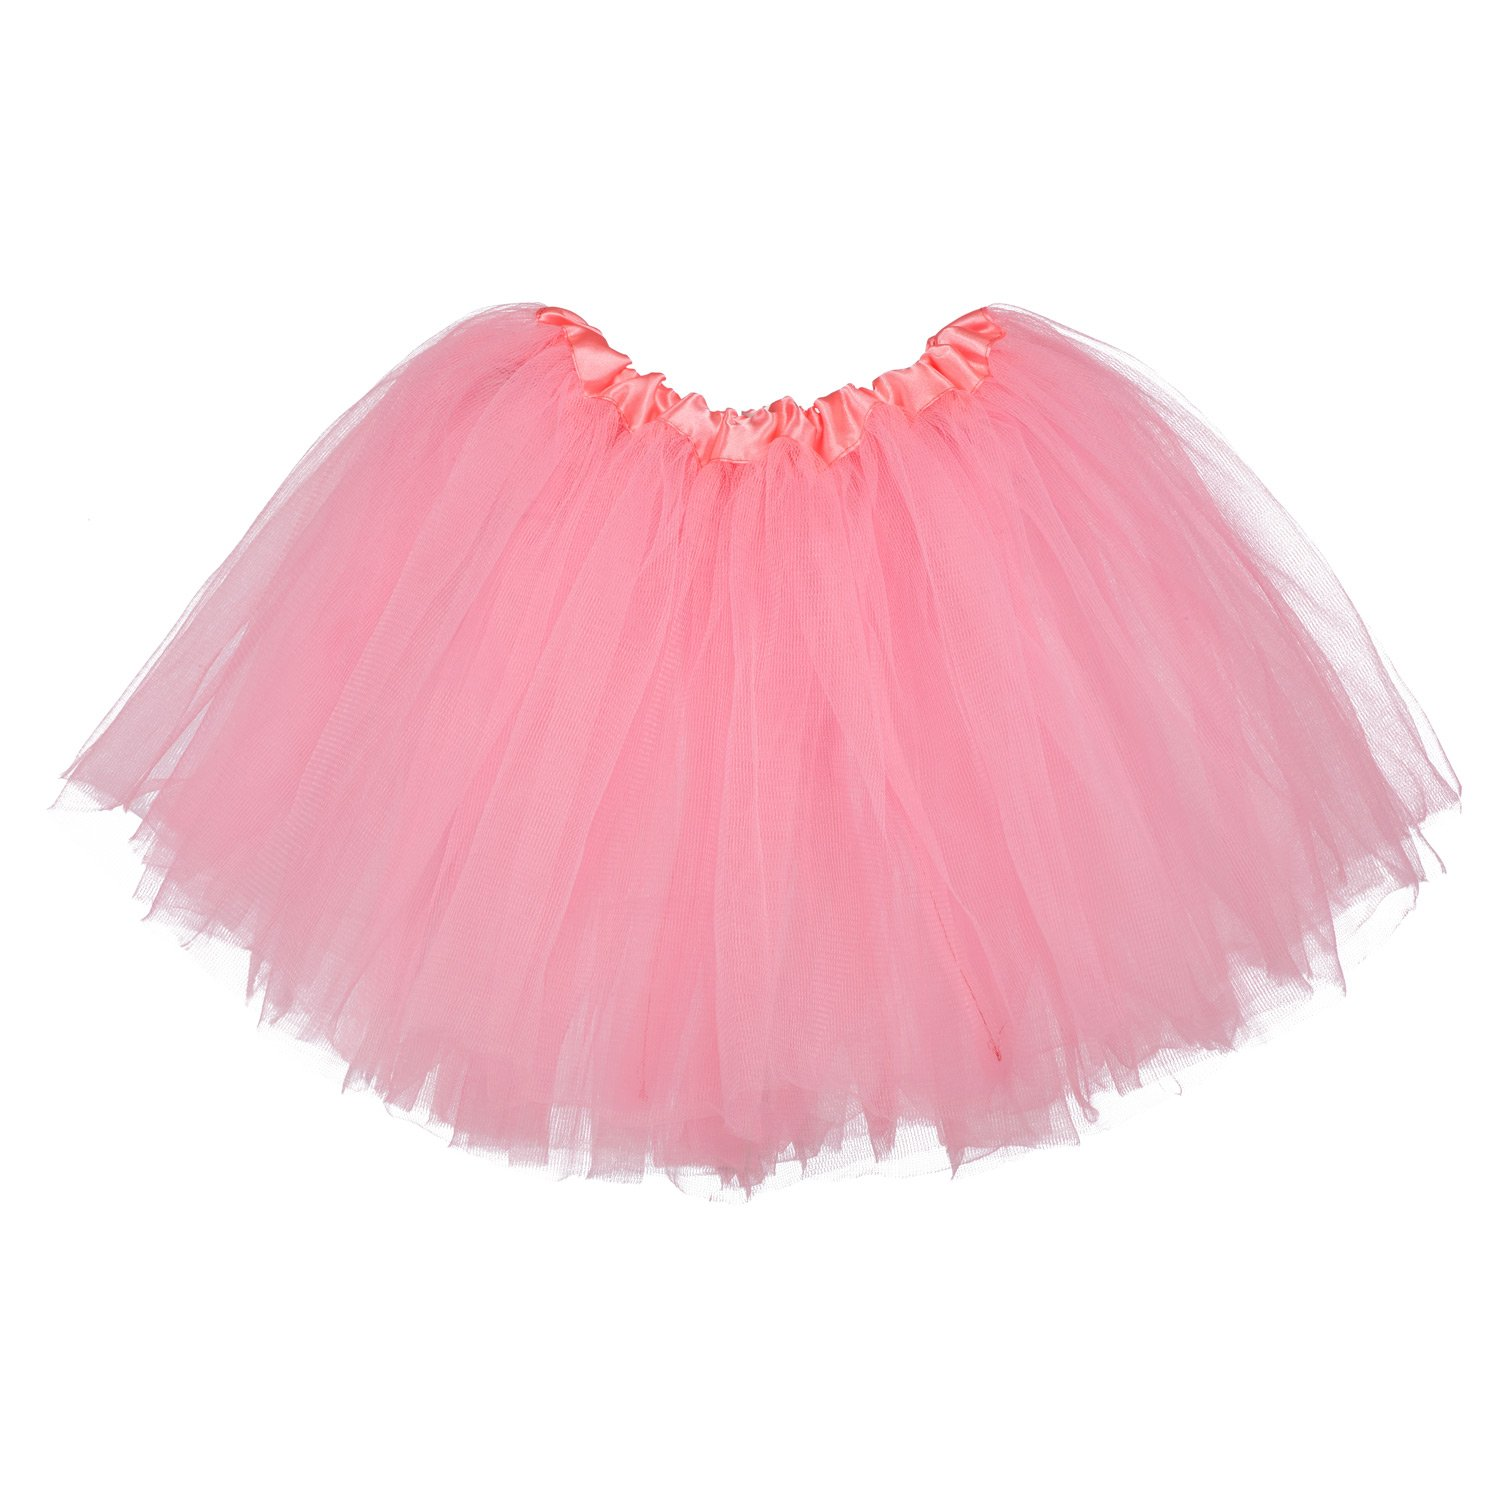 a3aac940c Our tulle ballerina tutus are perfect for baby photo shoots, birthday tutus,  princess parties, fairy costumes, play dress-up, and special occasions!